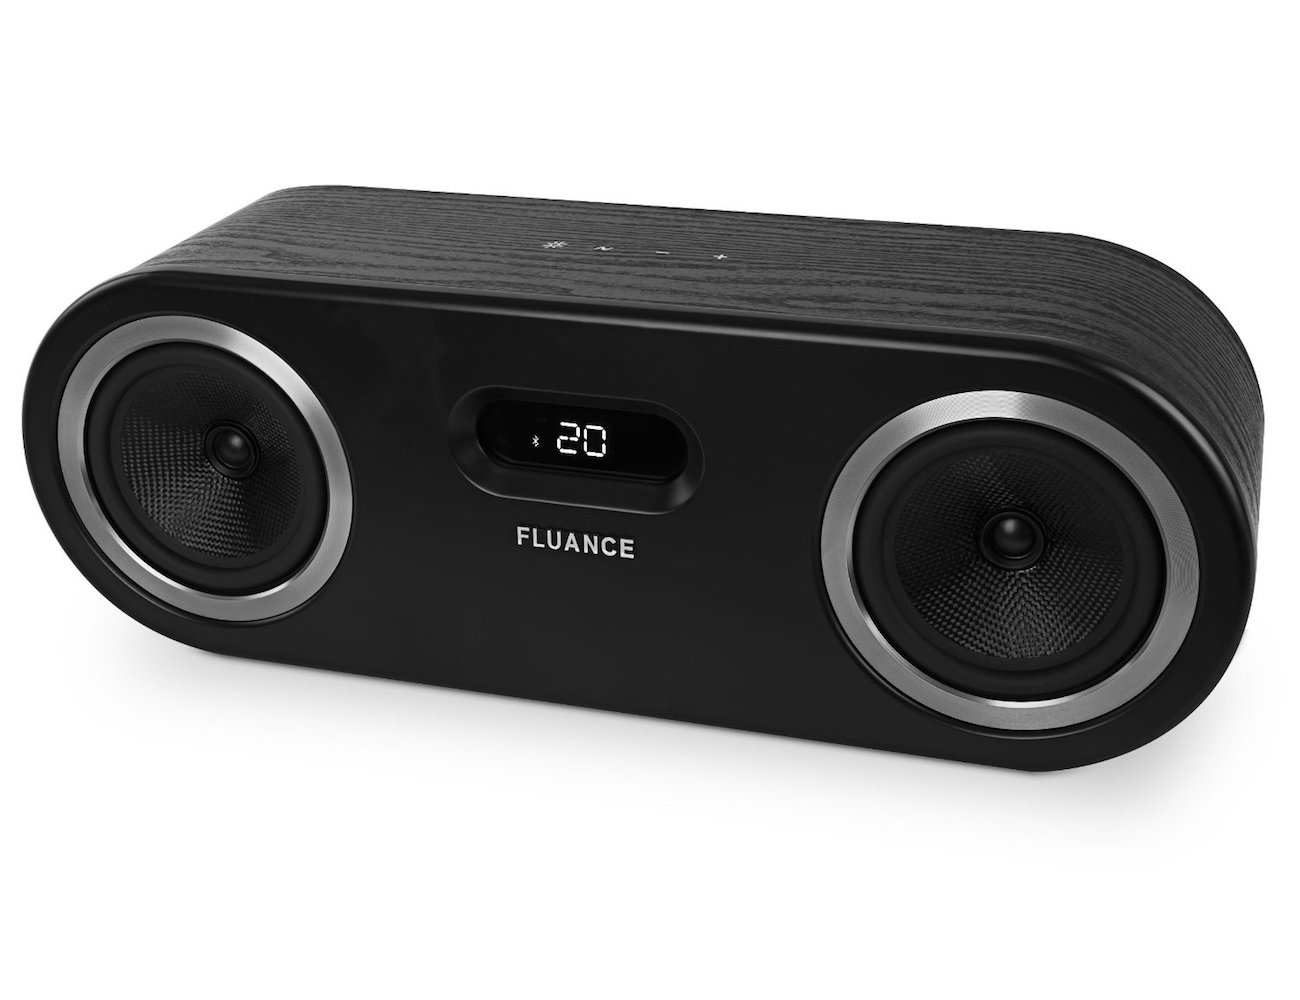 Fluance Fi50 High Performance Bluetooth Wood Speaker System